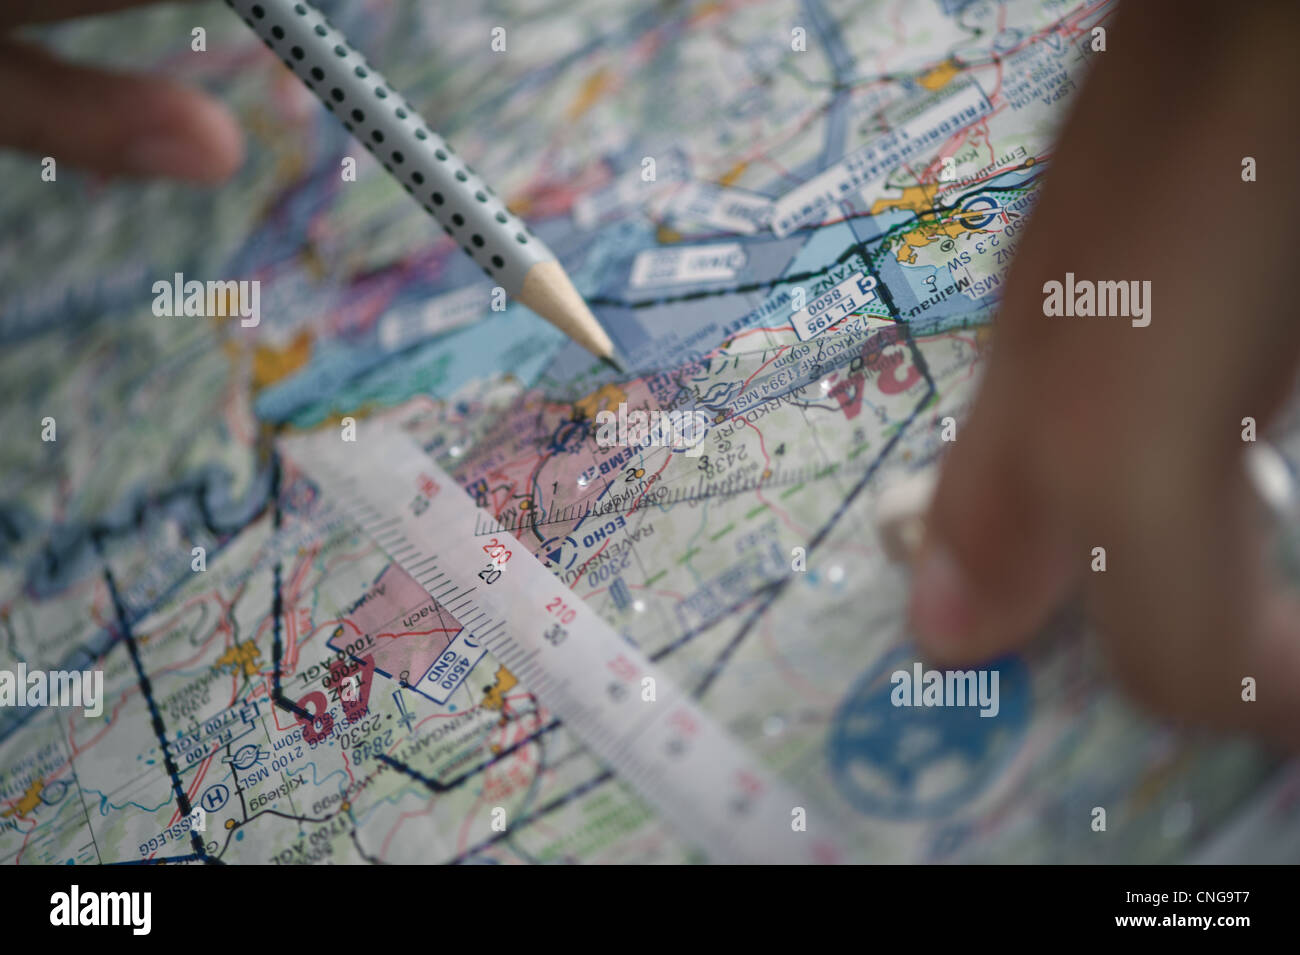 Pre flight planning detail of an aeronautical map with ruler and pencil - Stock Image